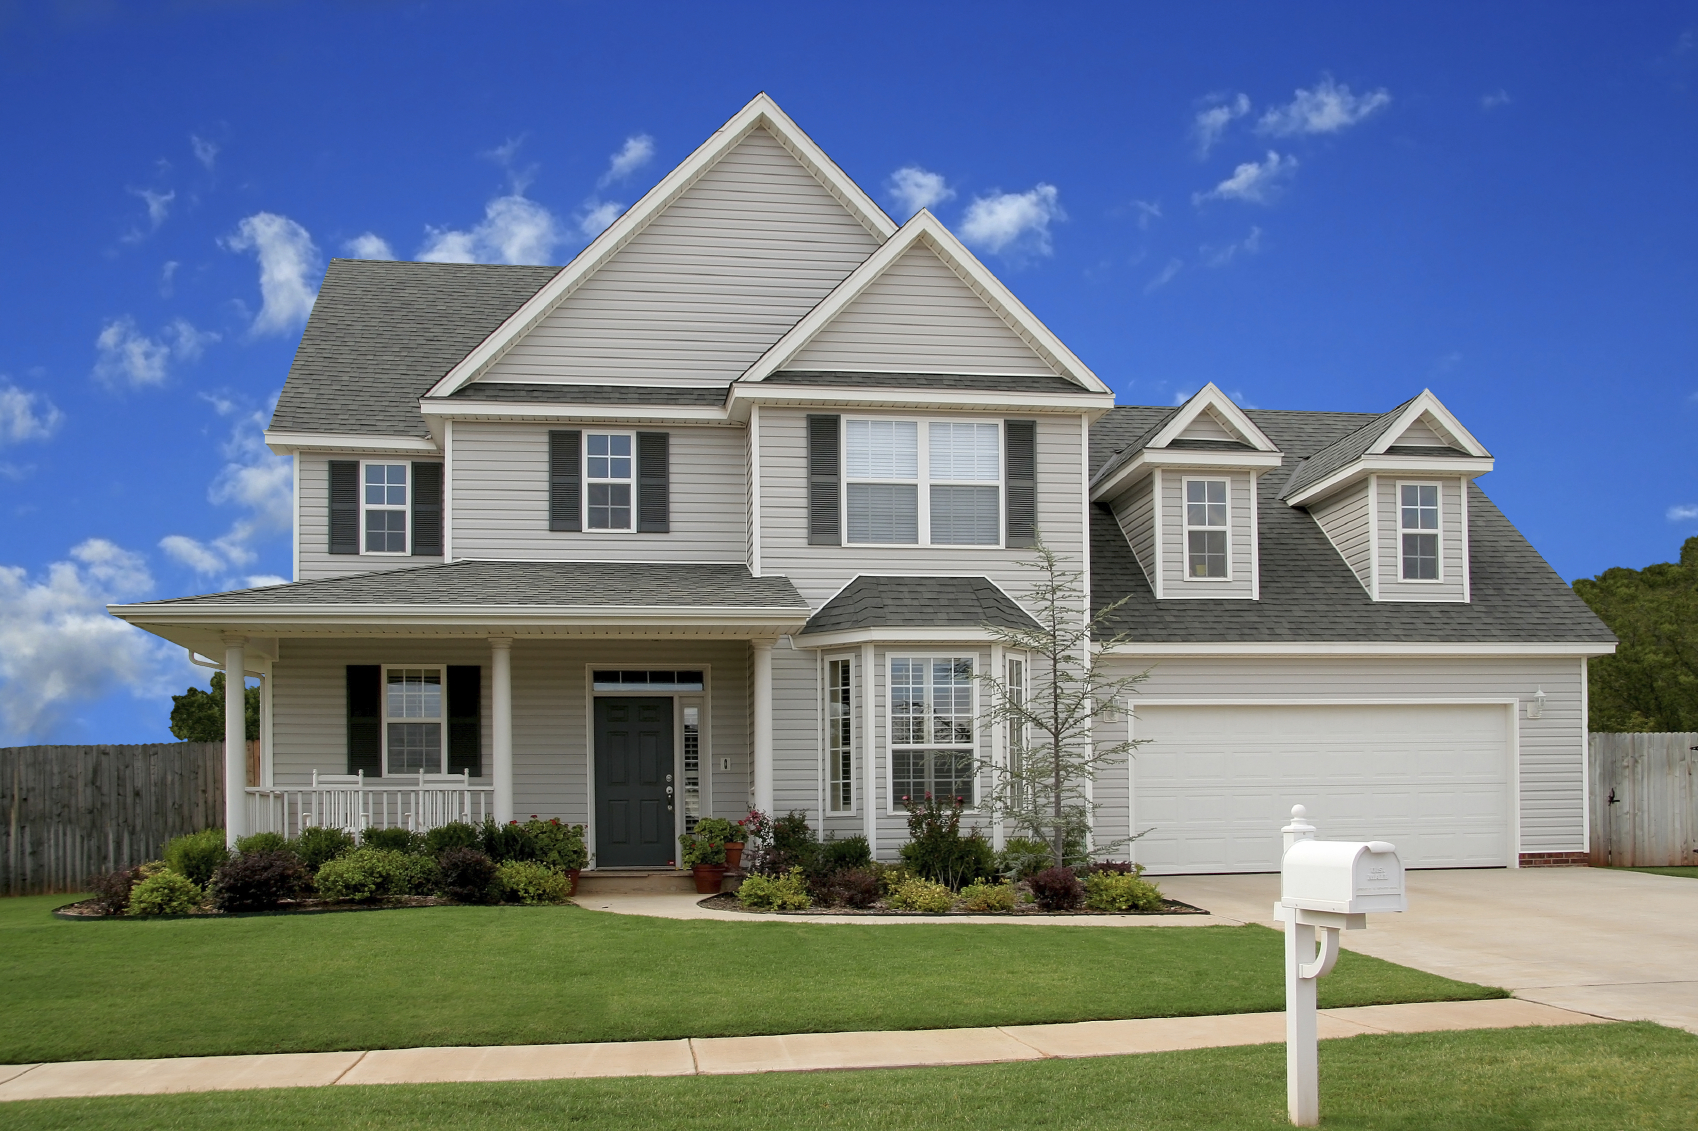 before-you-buy-home-inspections-hudson-valley-new-york-city-long-island